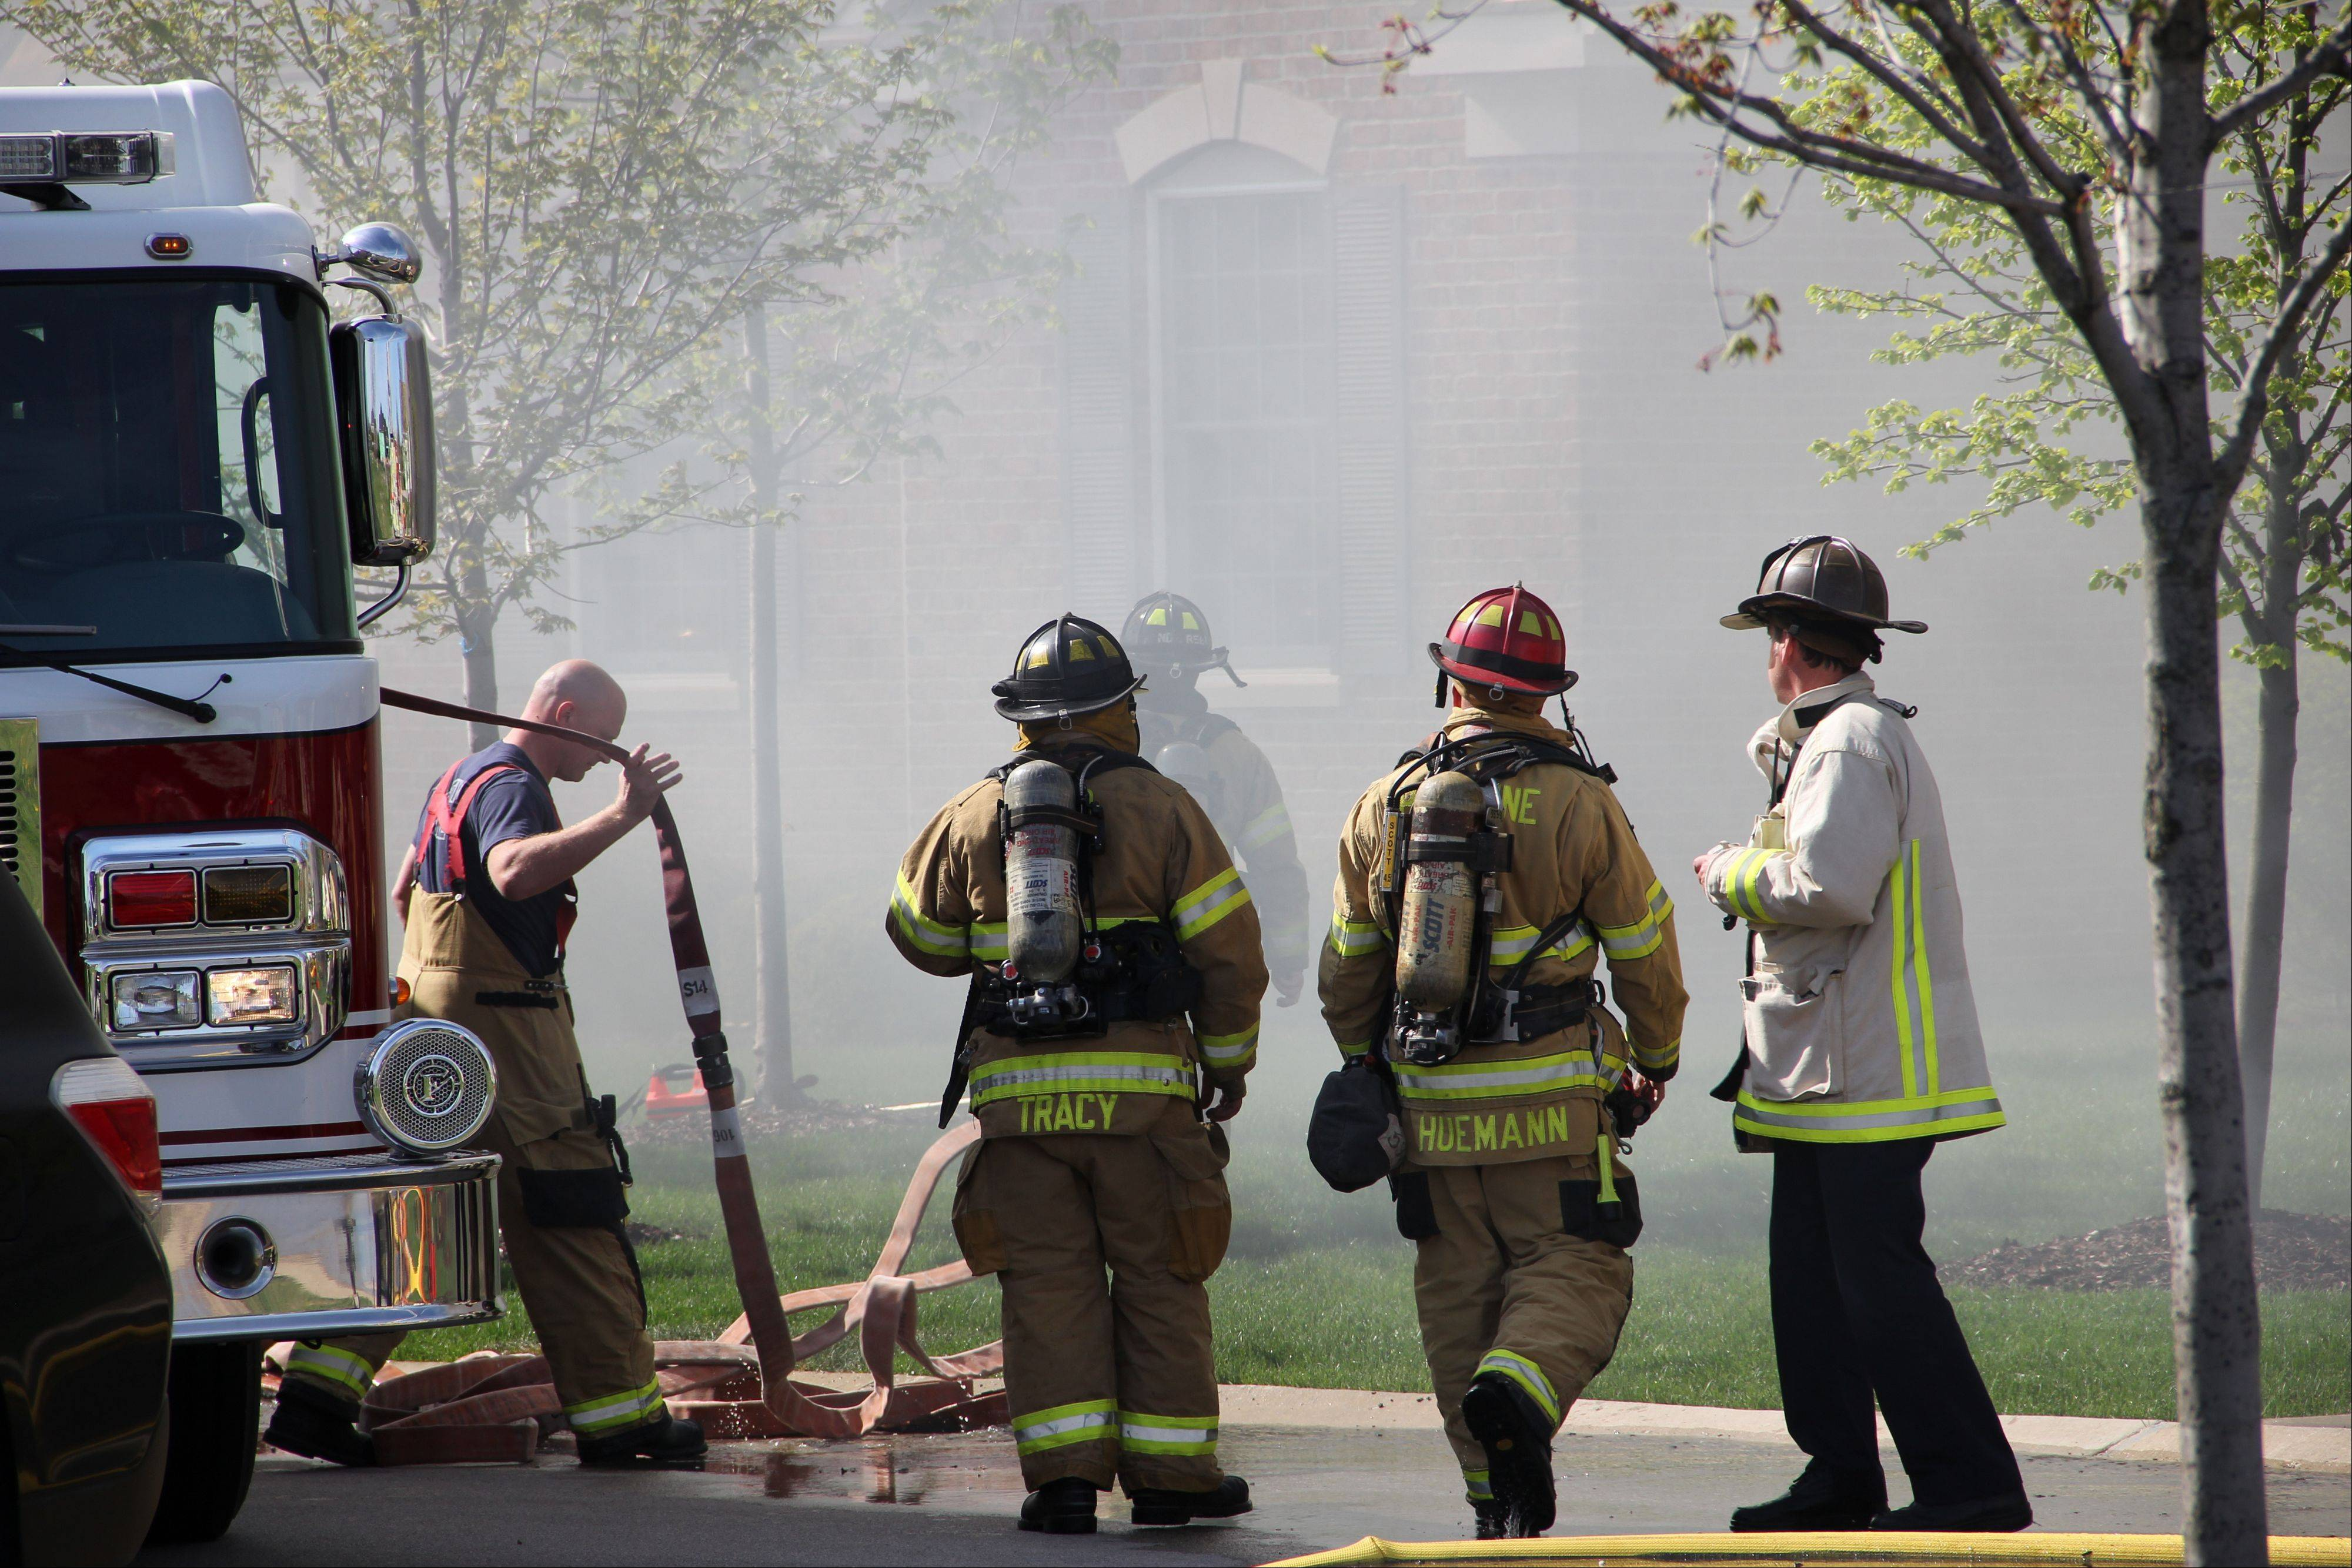 Fire and rescue personnel responded to a structure fire Tuesday afternoon on Aztec Courtin South Barrington.